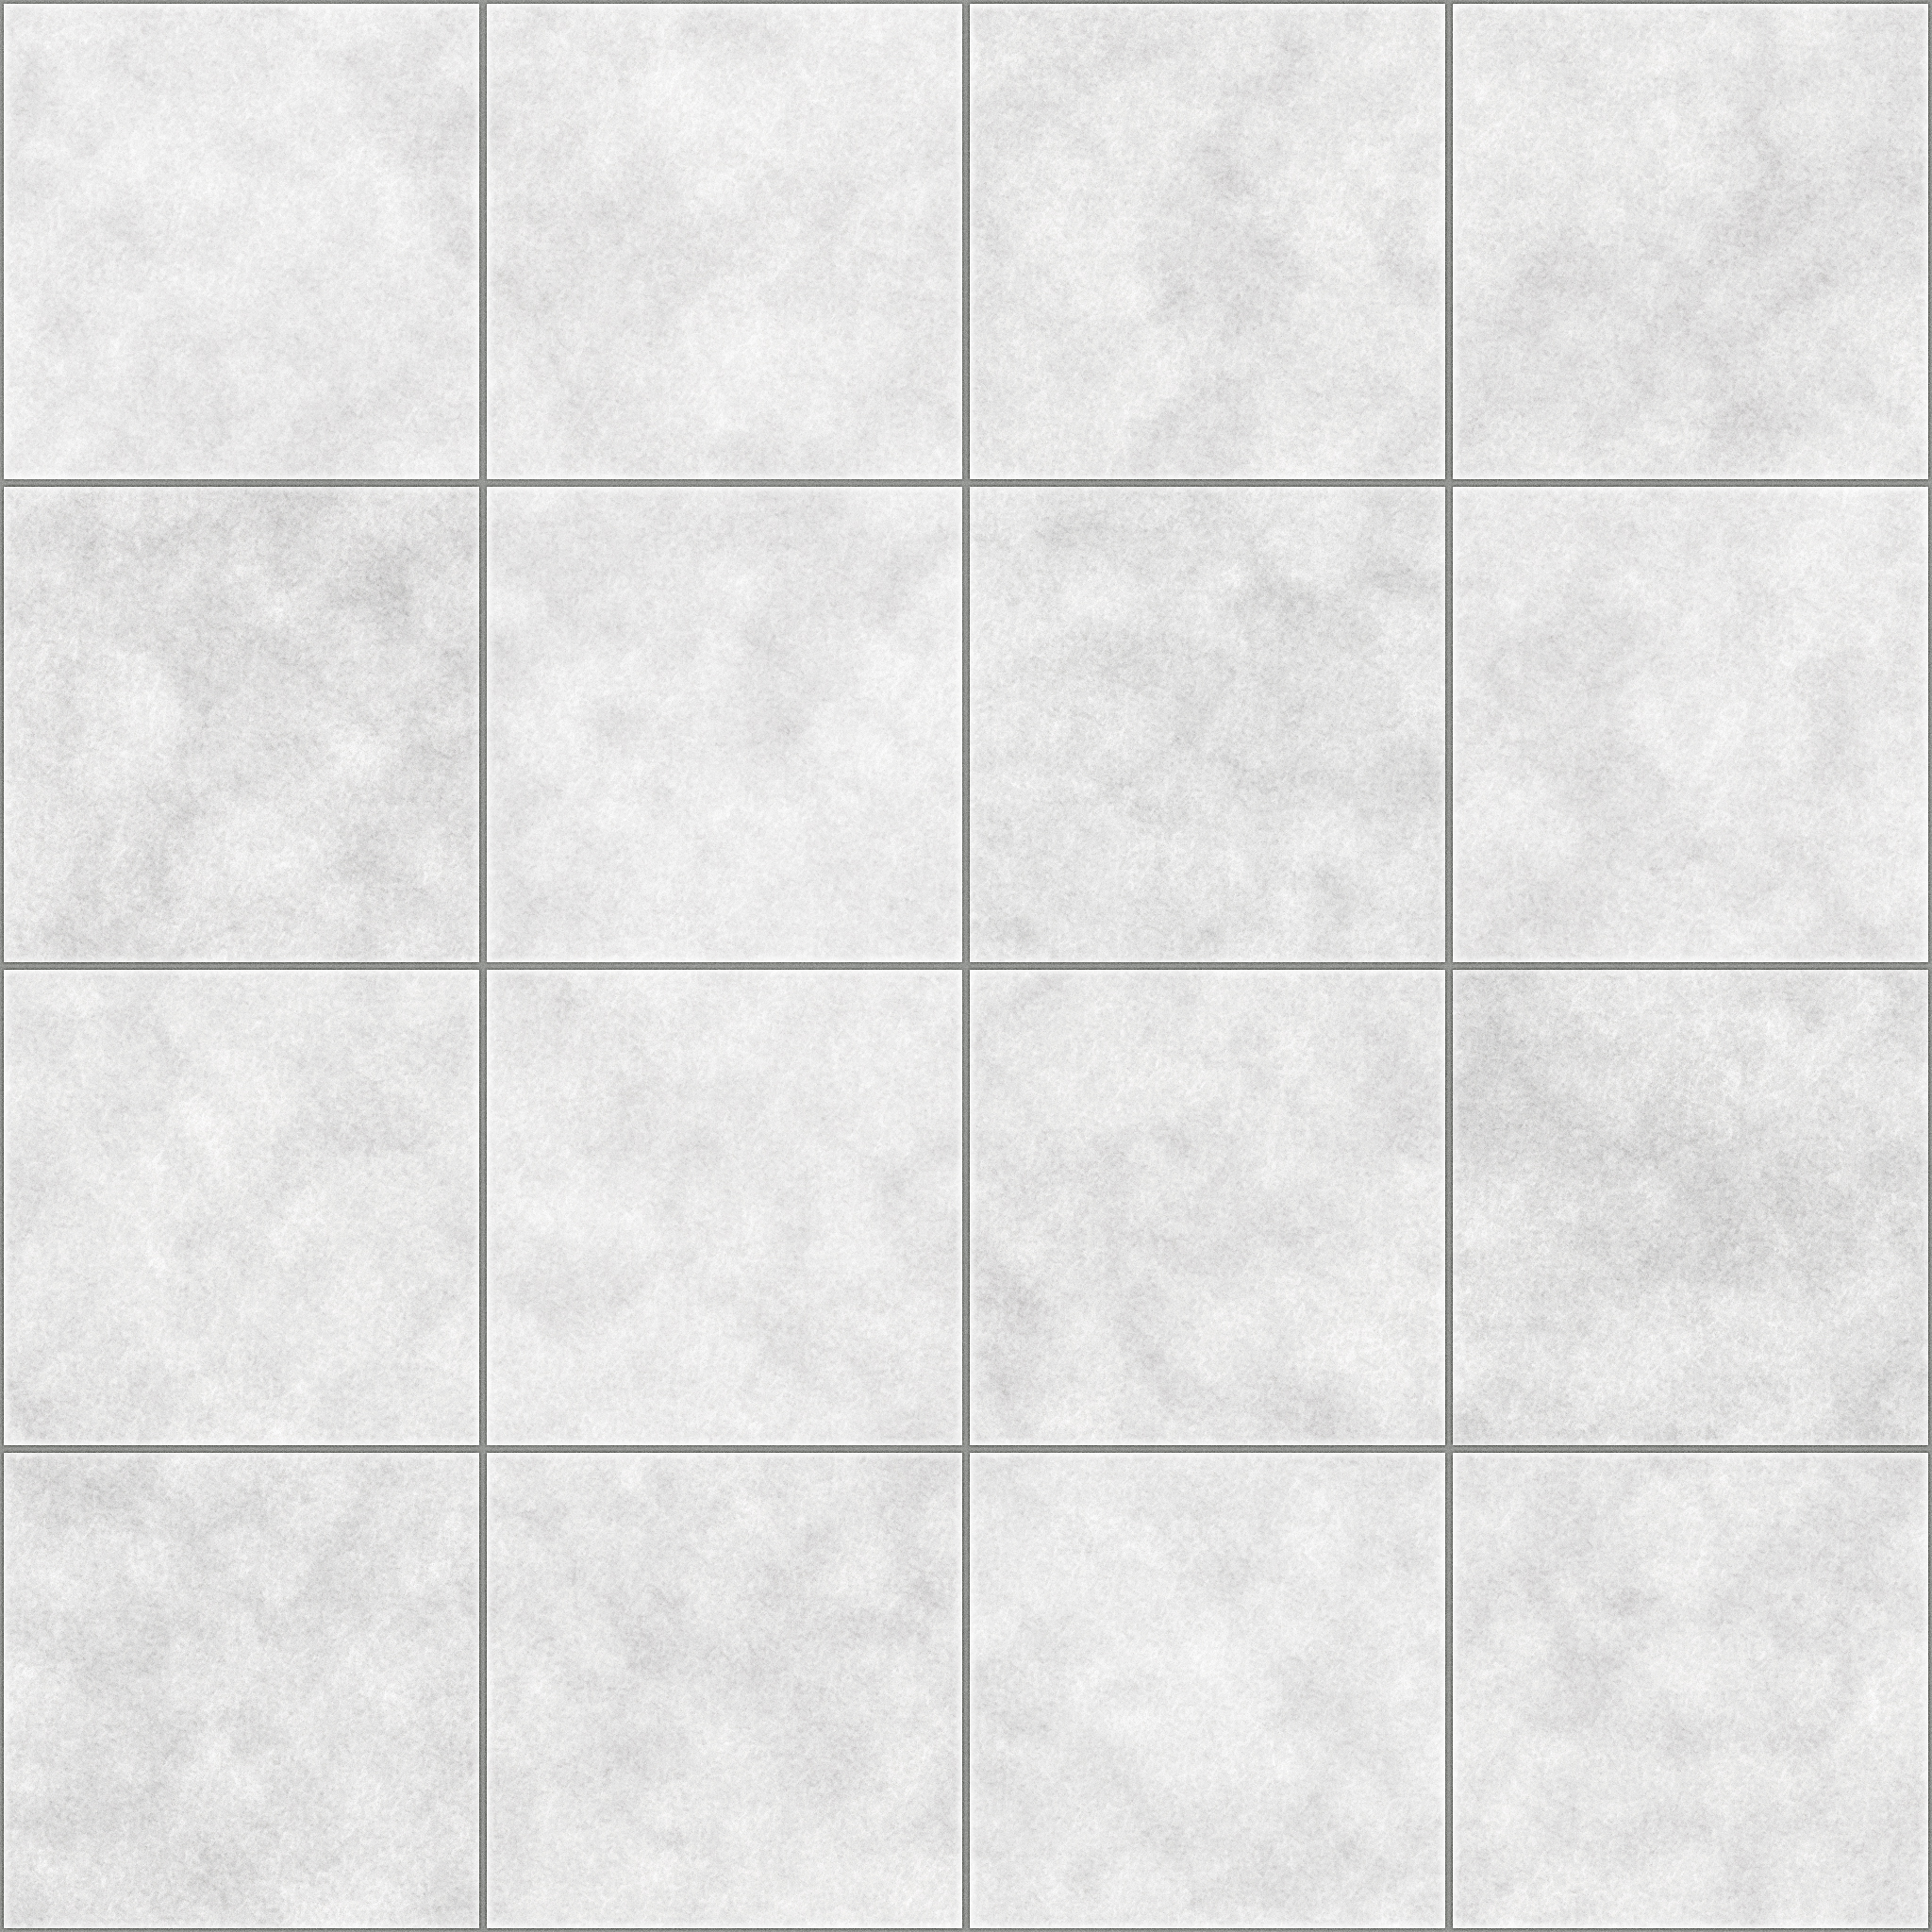 Marble floor tiles texture tileable 2048x2048 by for Exterior floor tiles texture